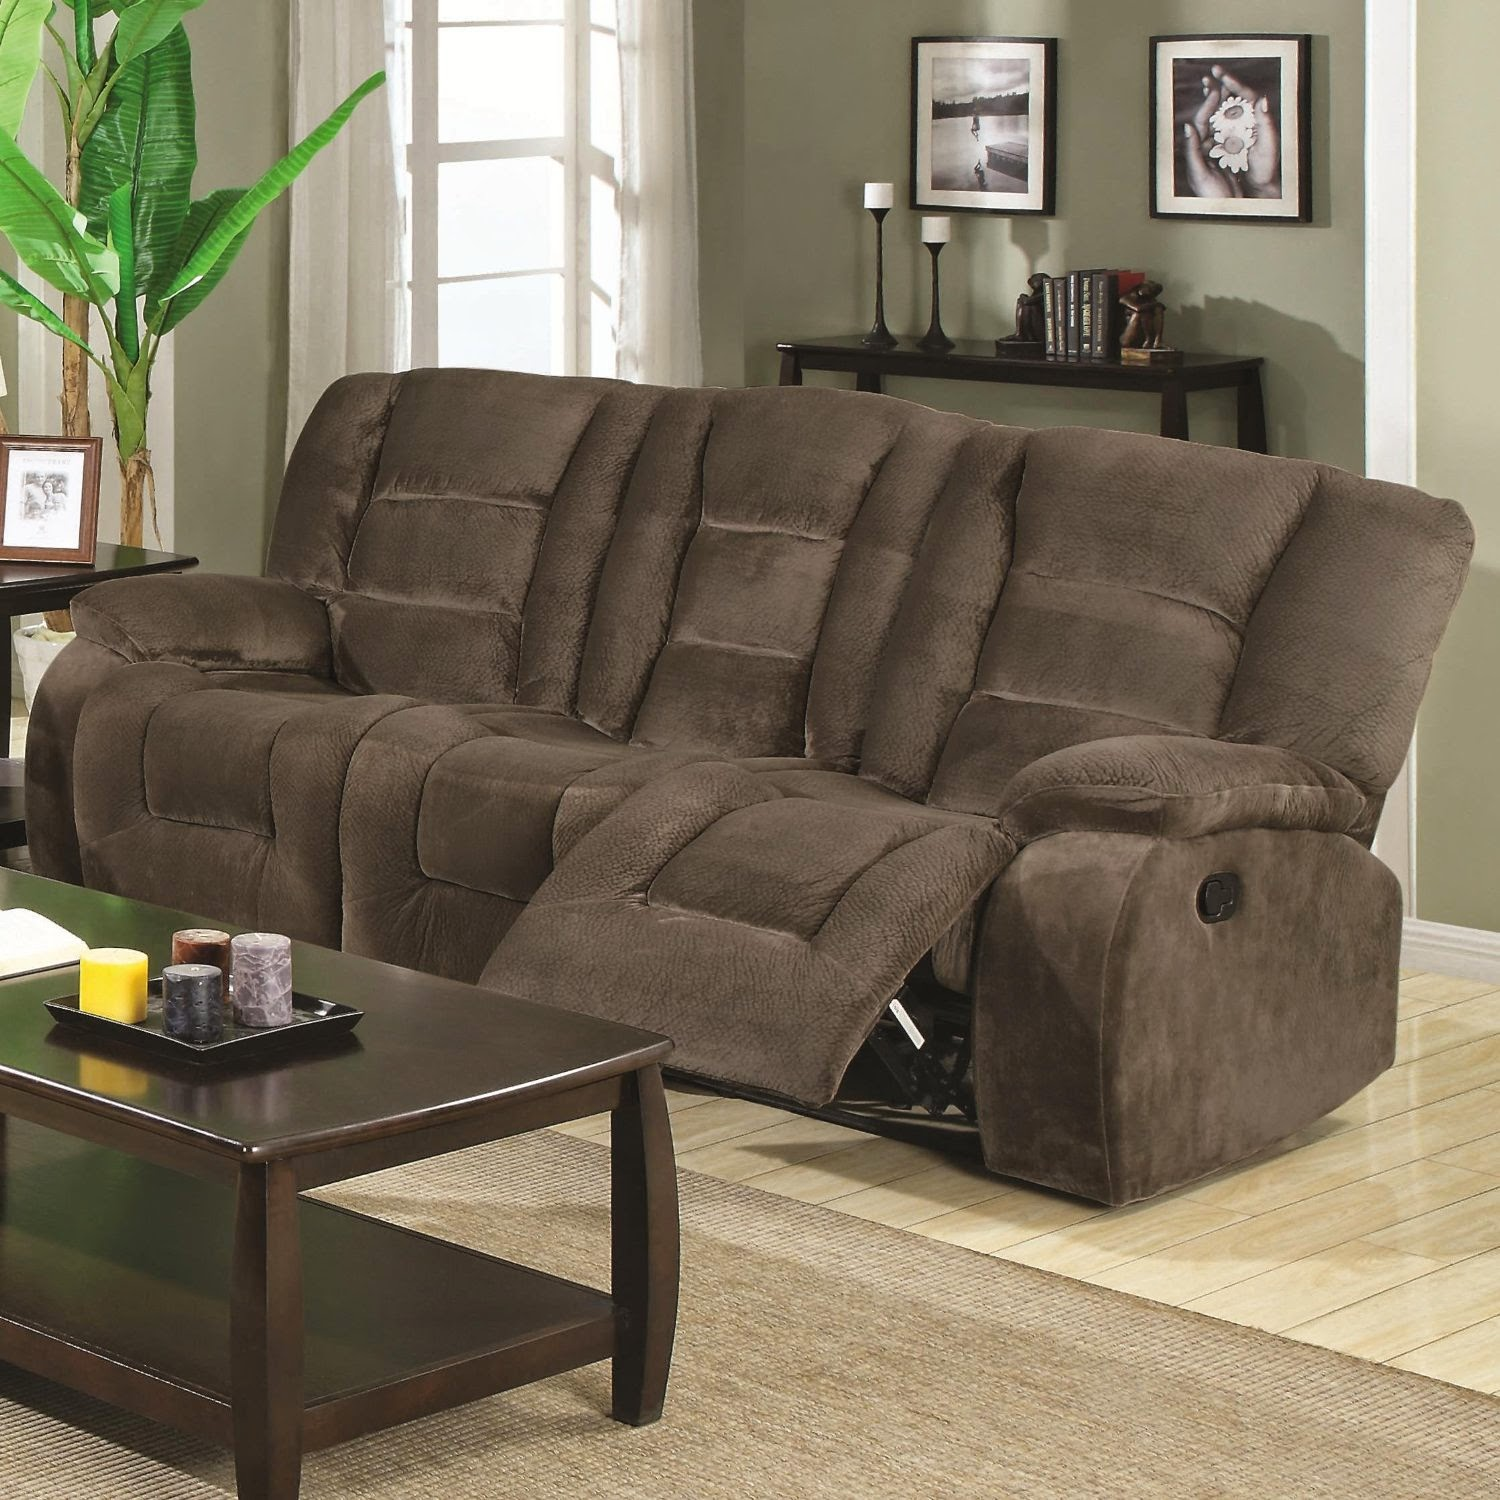 cheap reclining sofas sale fabric recliner sofas sale. Black Bedroom Furniture Sets. Home Design Ideas